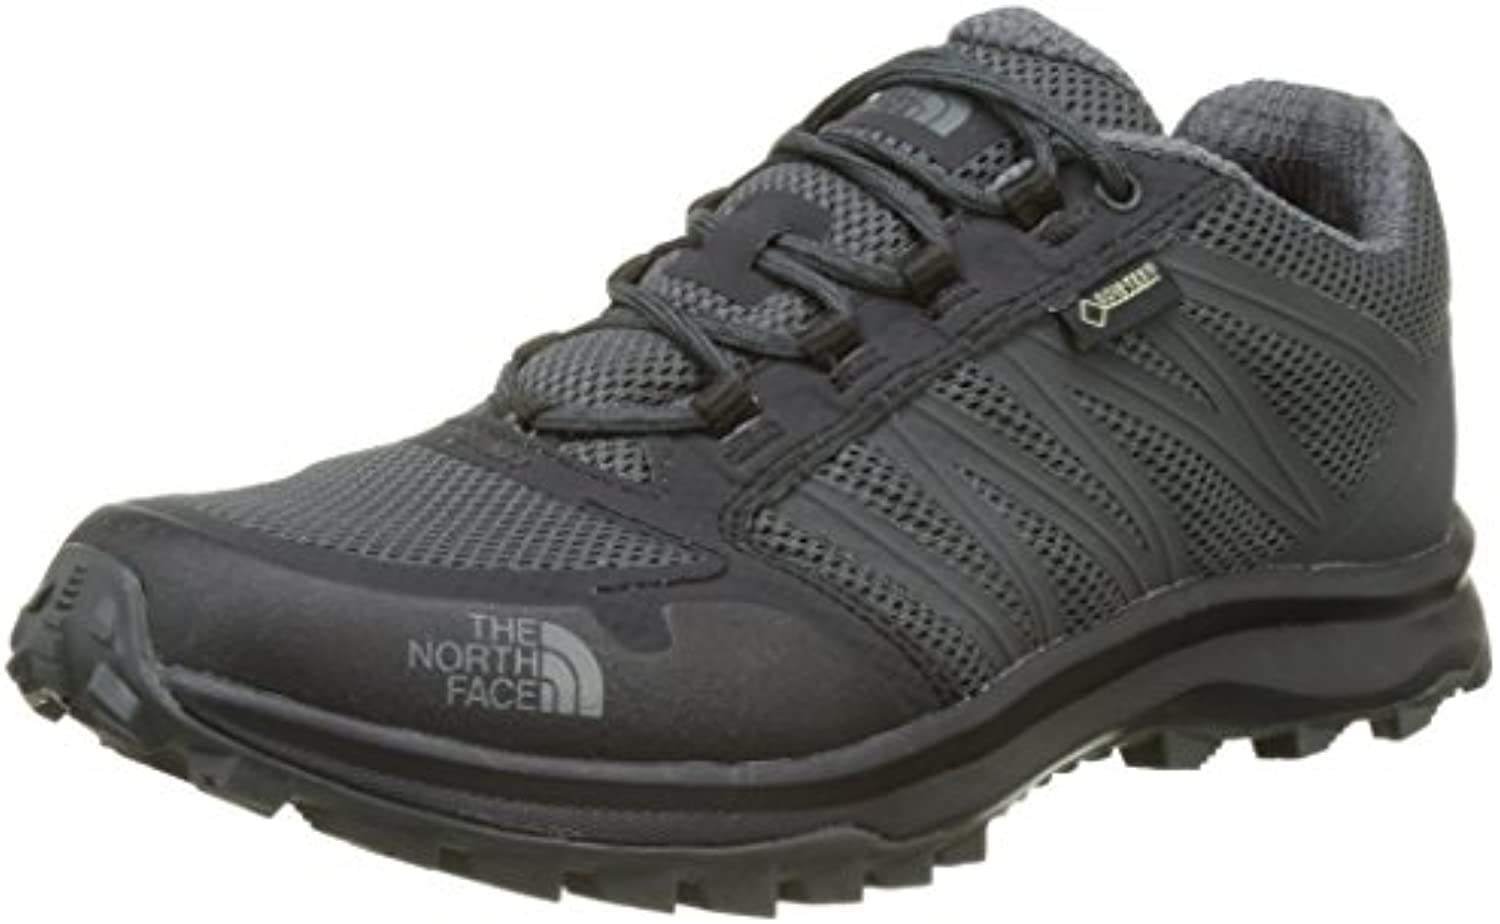 The North Face Herren Litewave Fastpack Gore Tex Trekking  Wanderhalbschuhe  Phantom Grey  39 EU